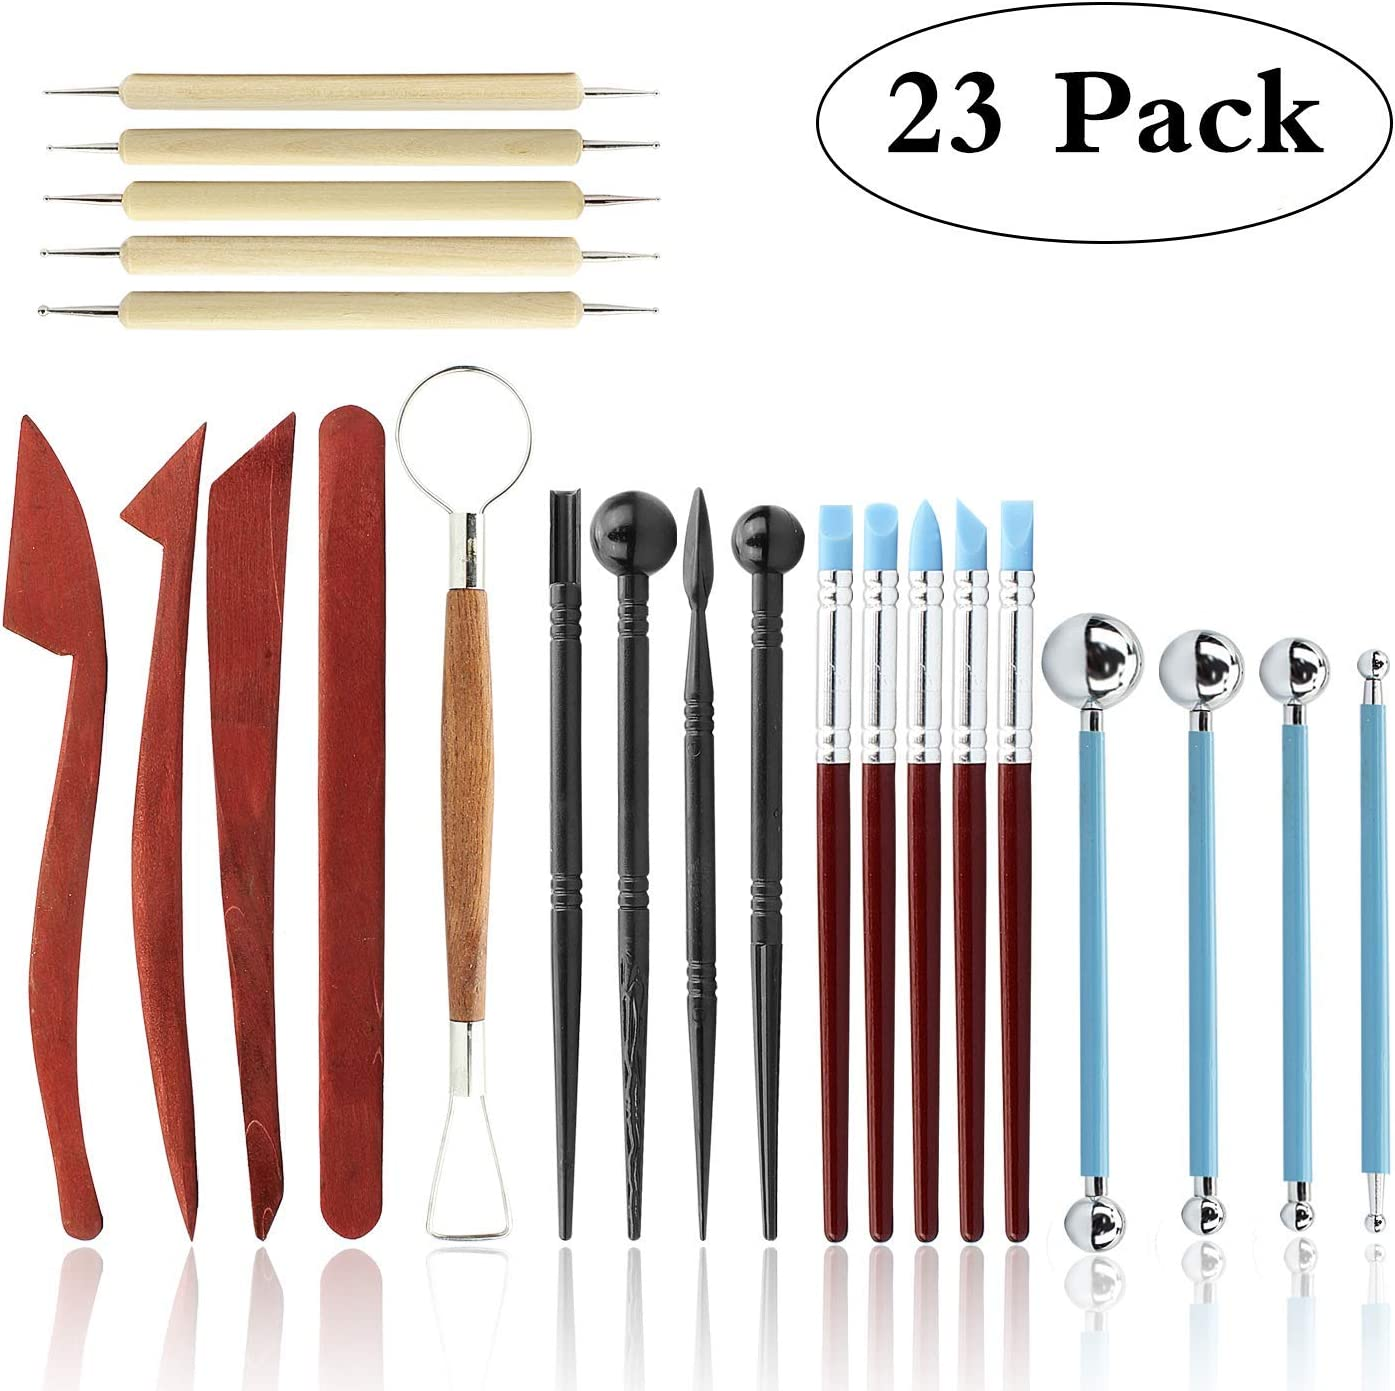 Set of 7 6 inch Pottery Polymer Clay Ceramics Sculpting Modeling Tools